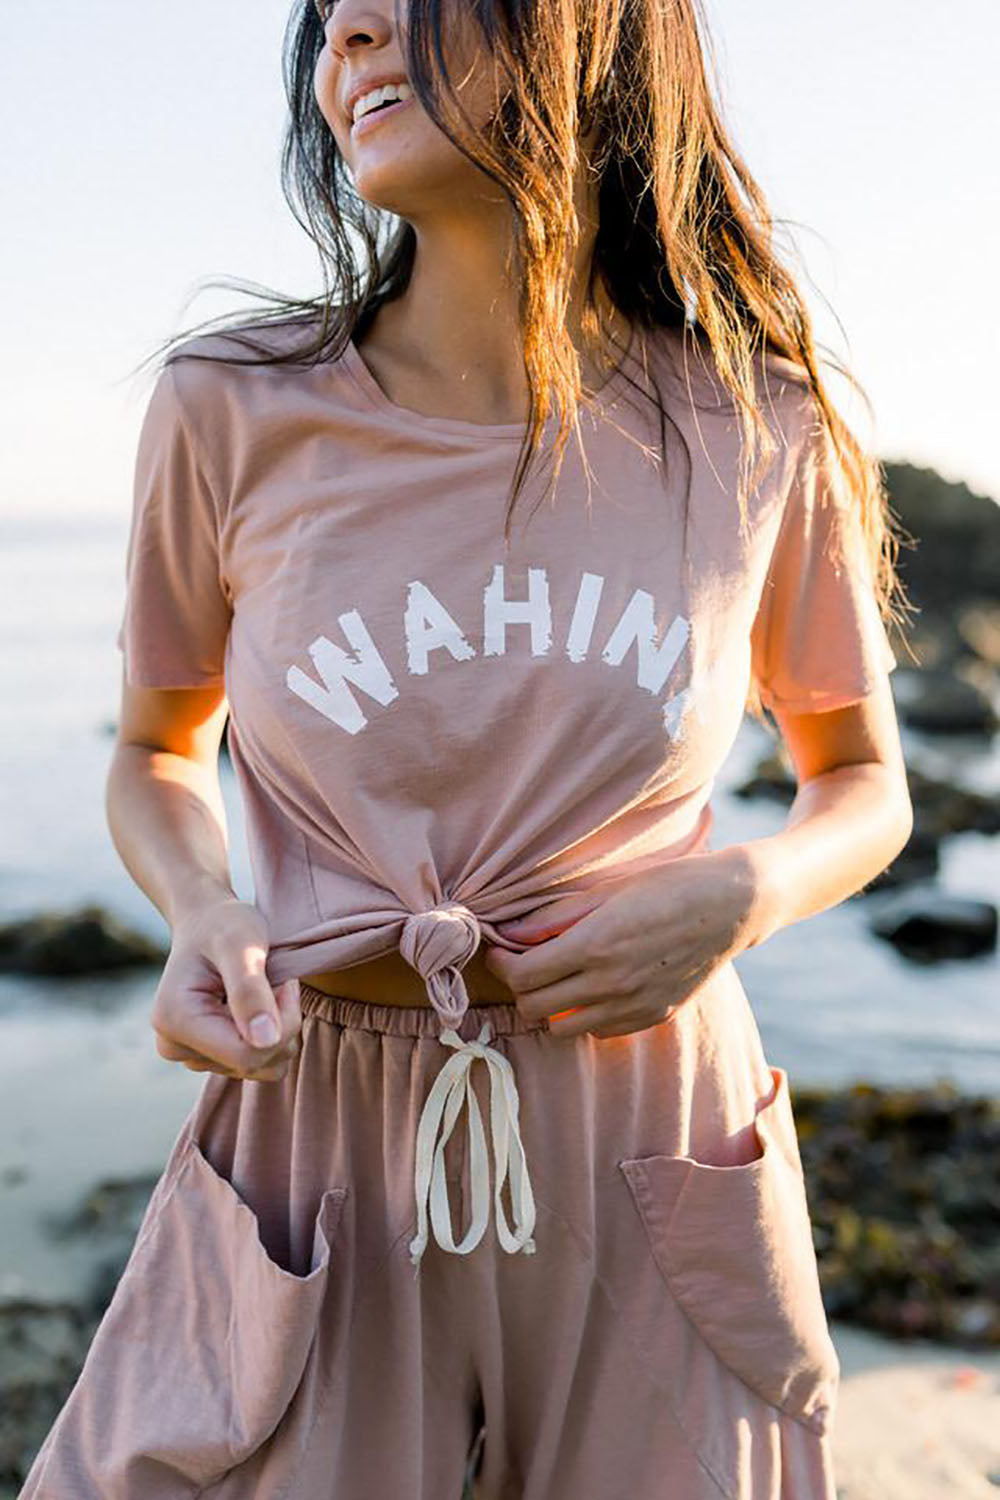 Dolkii Tee Wahine in Rose Gold